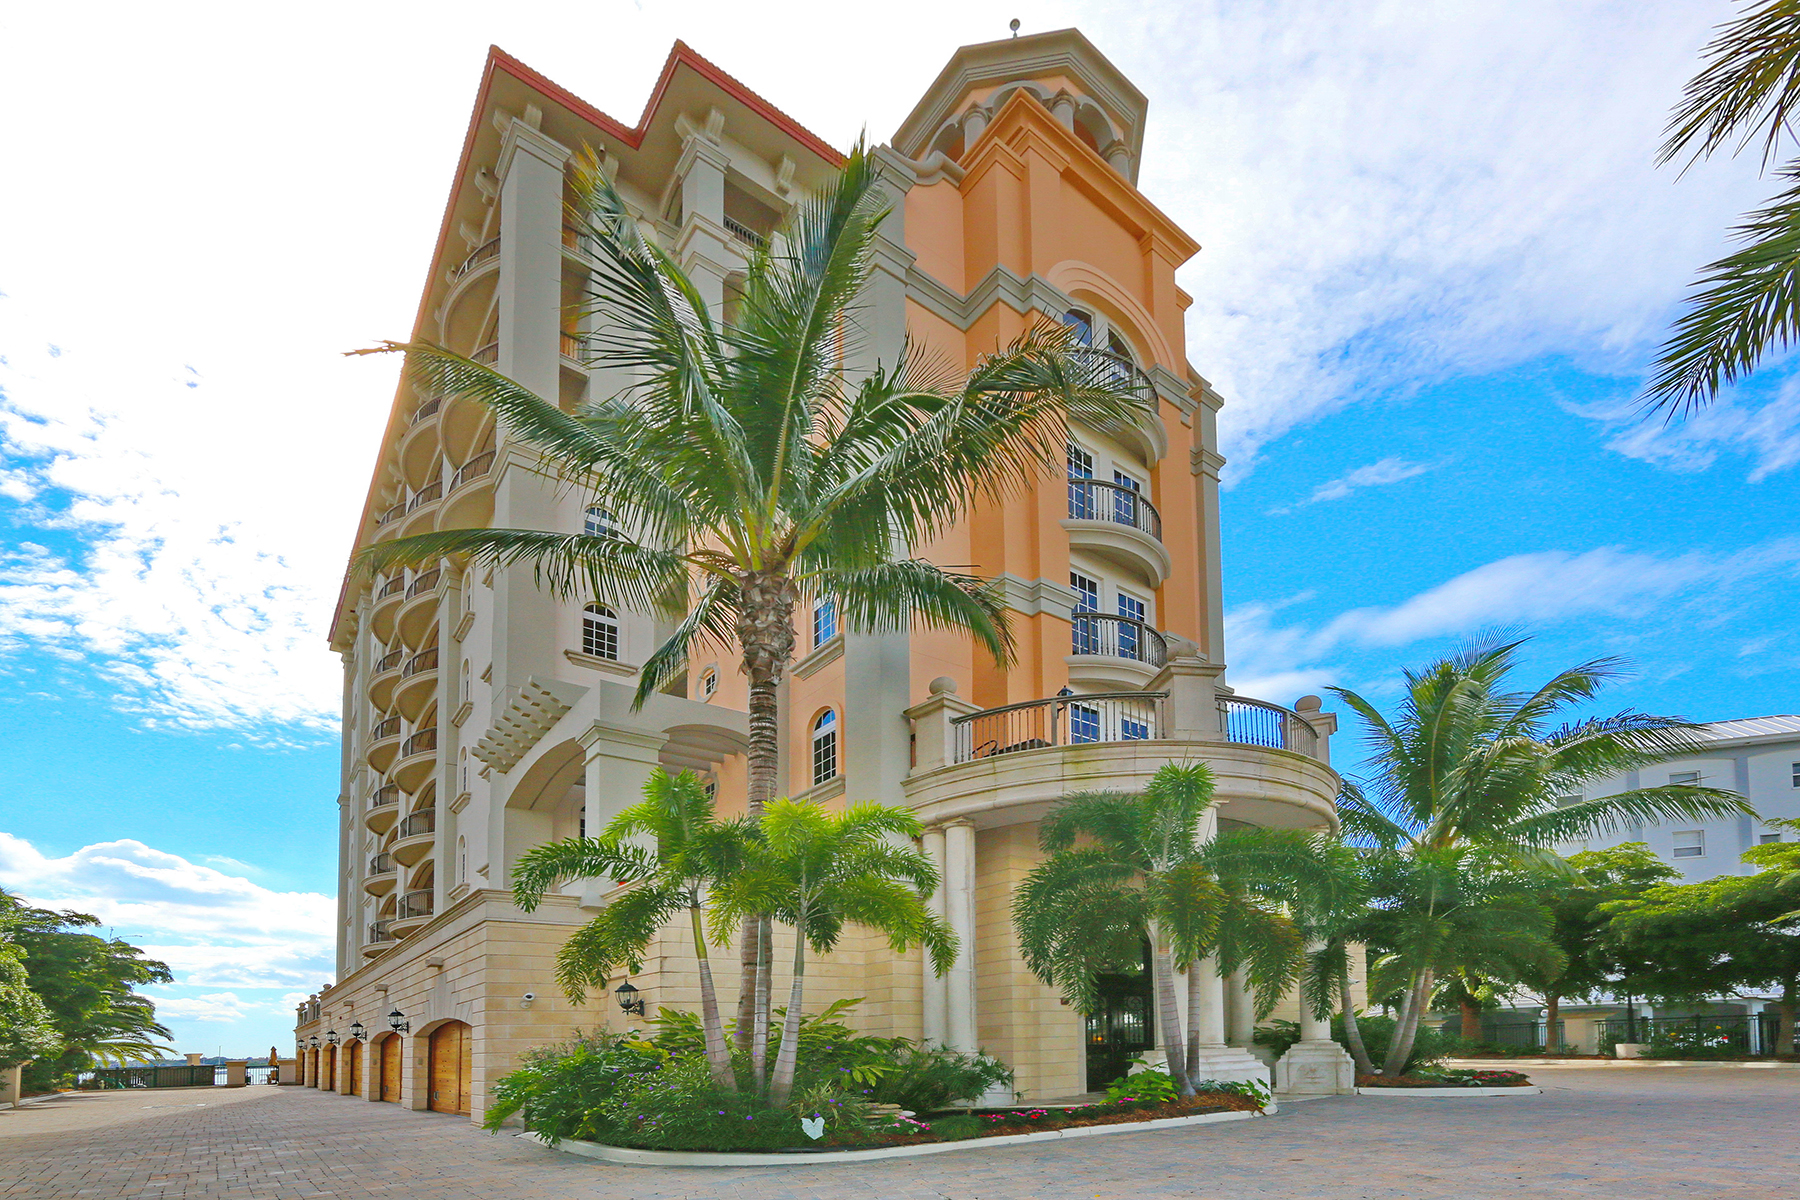 Condominium for Sale at GRANDE RIVIERA 420 Golden Gate Pt 700PH Sarasota, Florida, 34236 United States